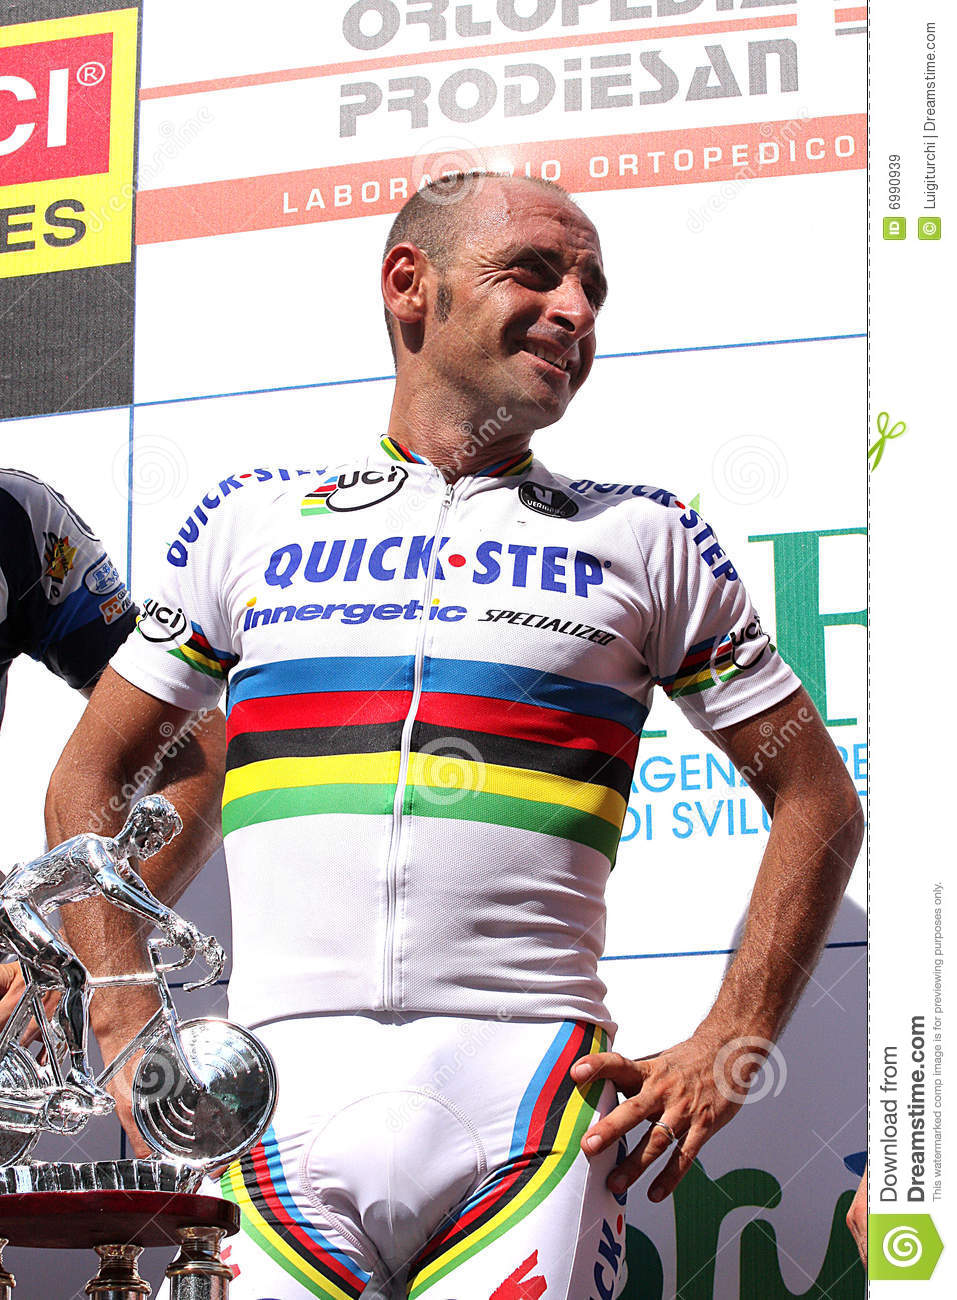 Paolo Bettini 4